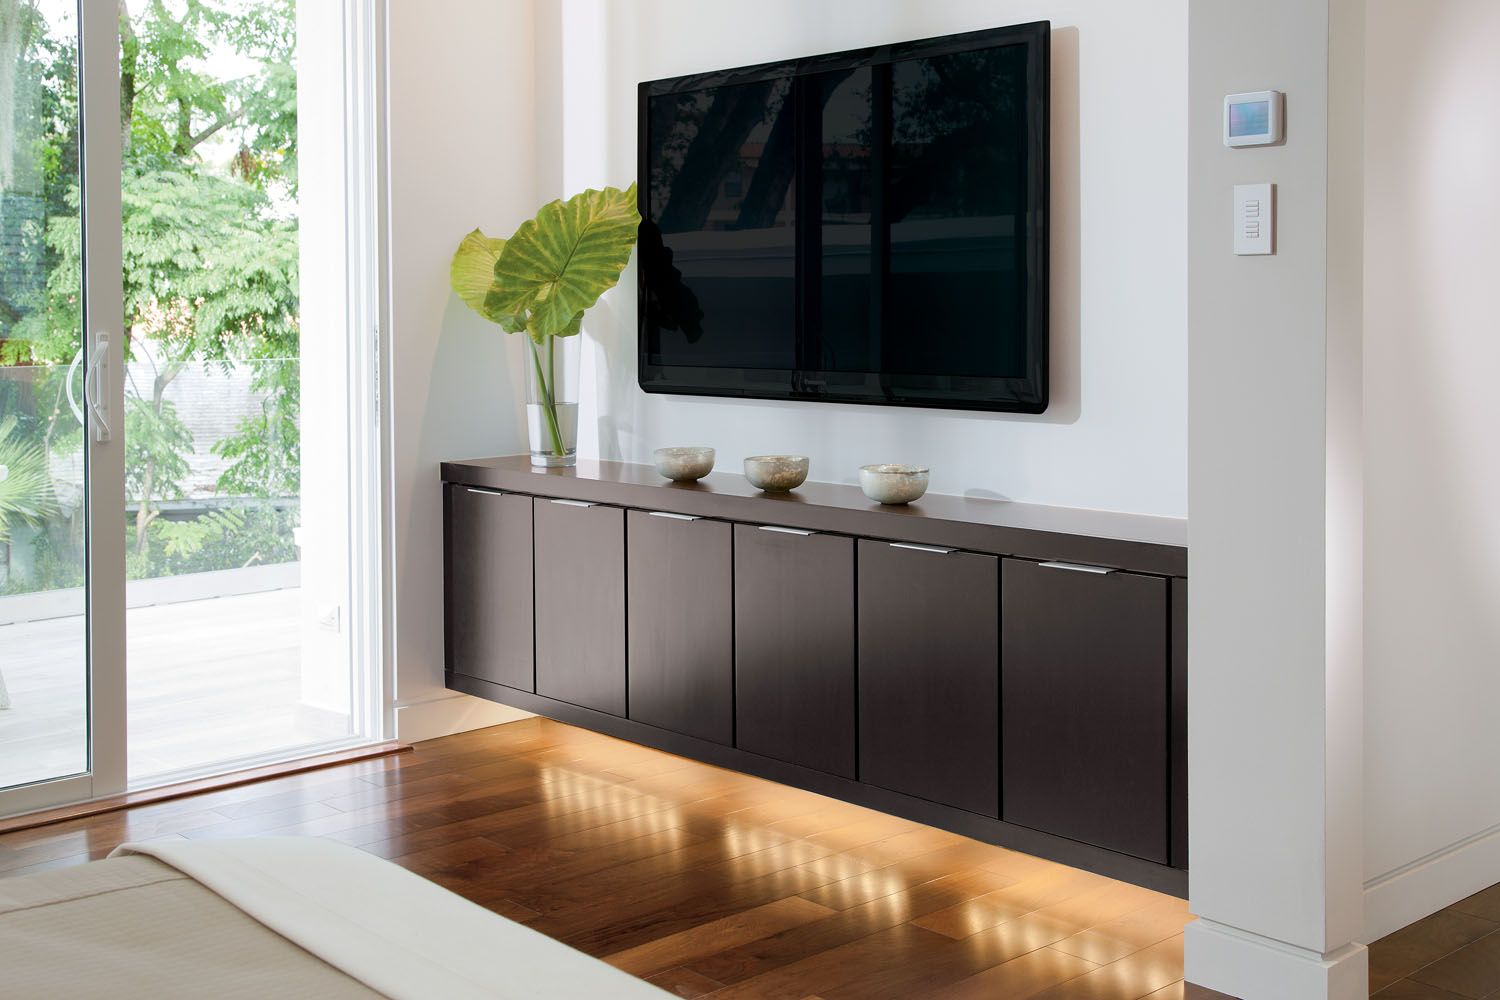 Floating Media Cabinet | Reinvent The Media Room With Cabinetry